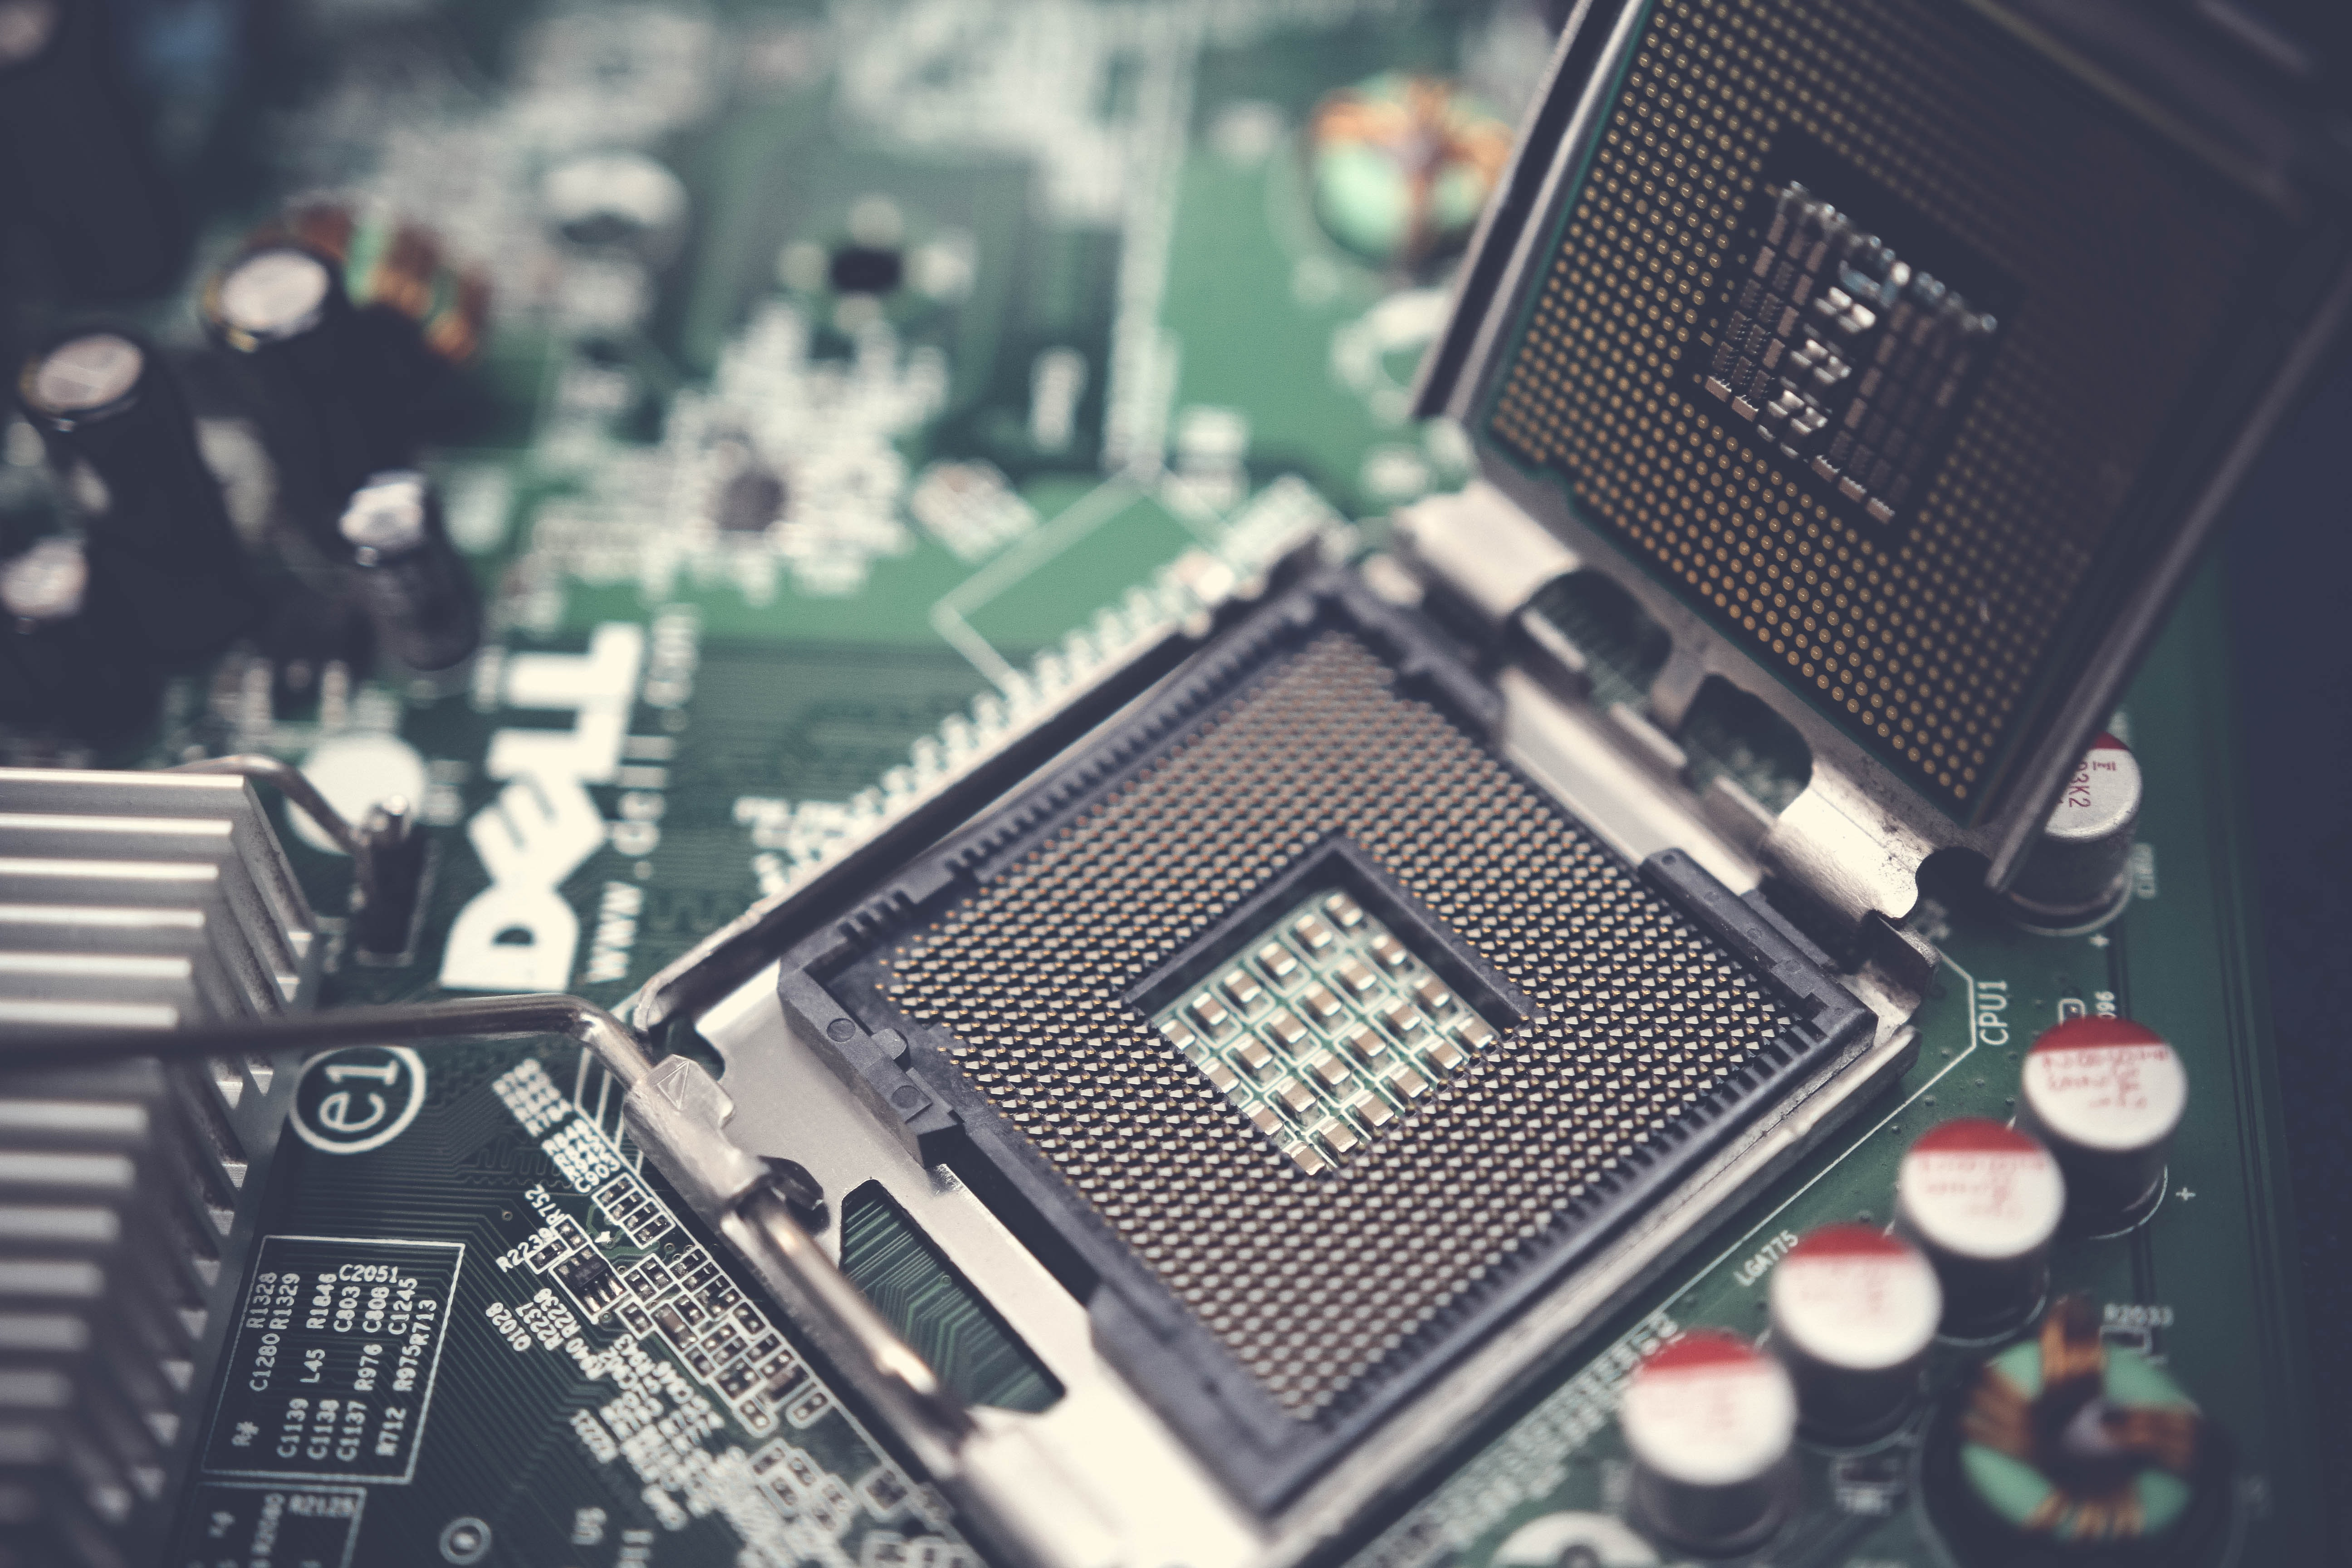 500 Amazing Circuit Board Photos Pexels Free Stock Assembly Buy Electronic Circuits Boardcircuit Related Searches Technology Electronics Computer